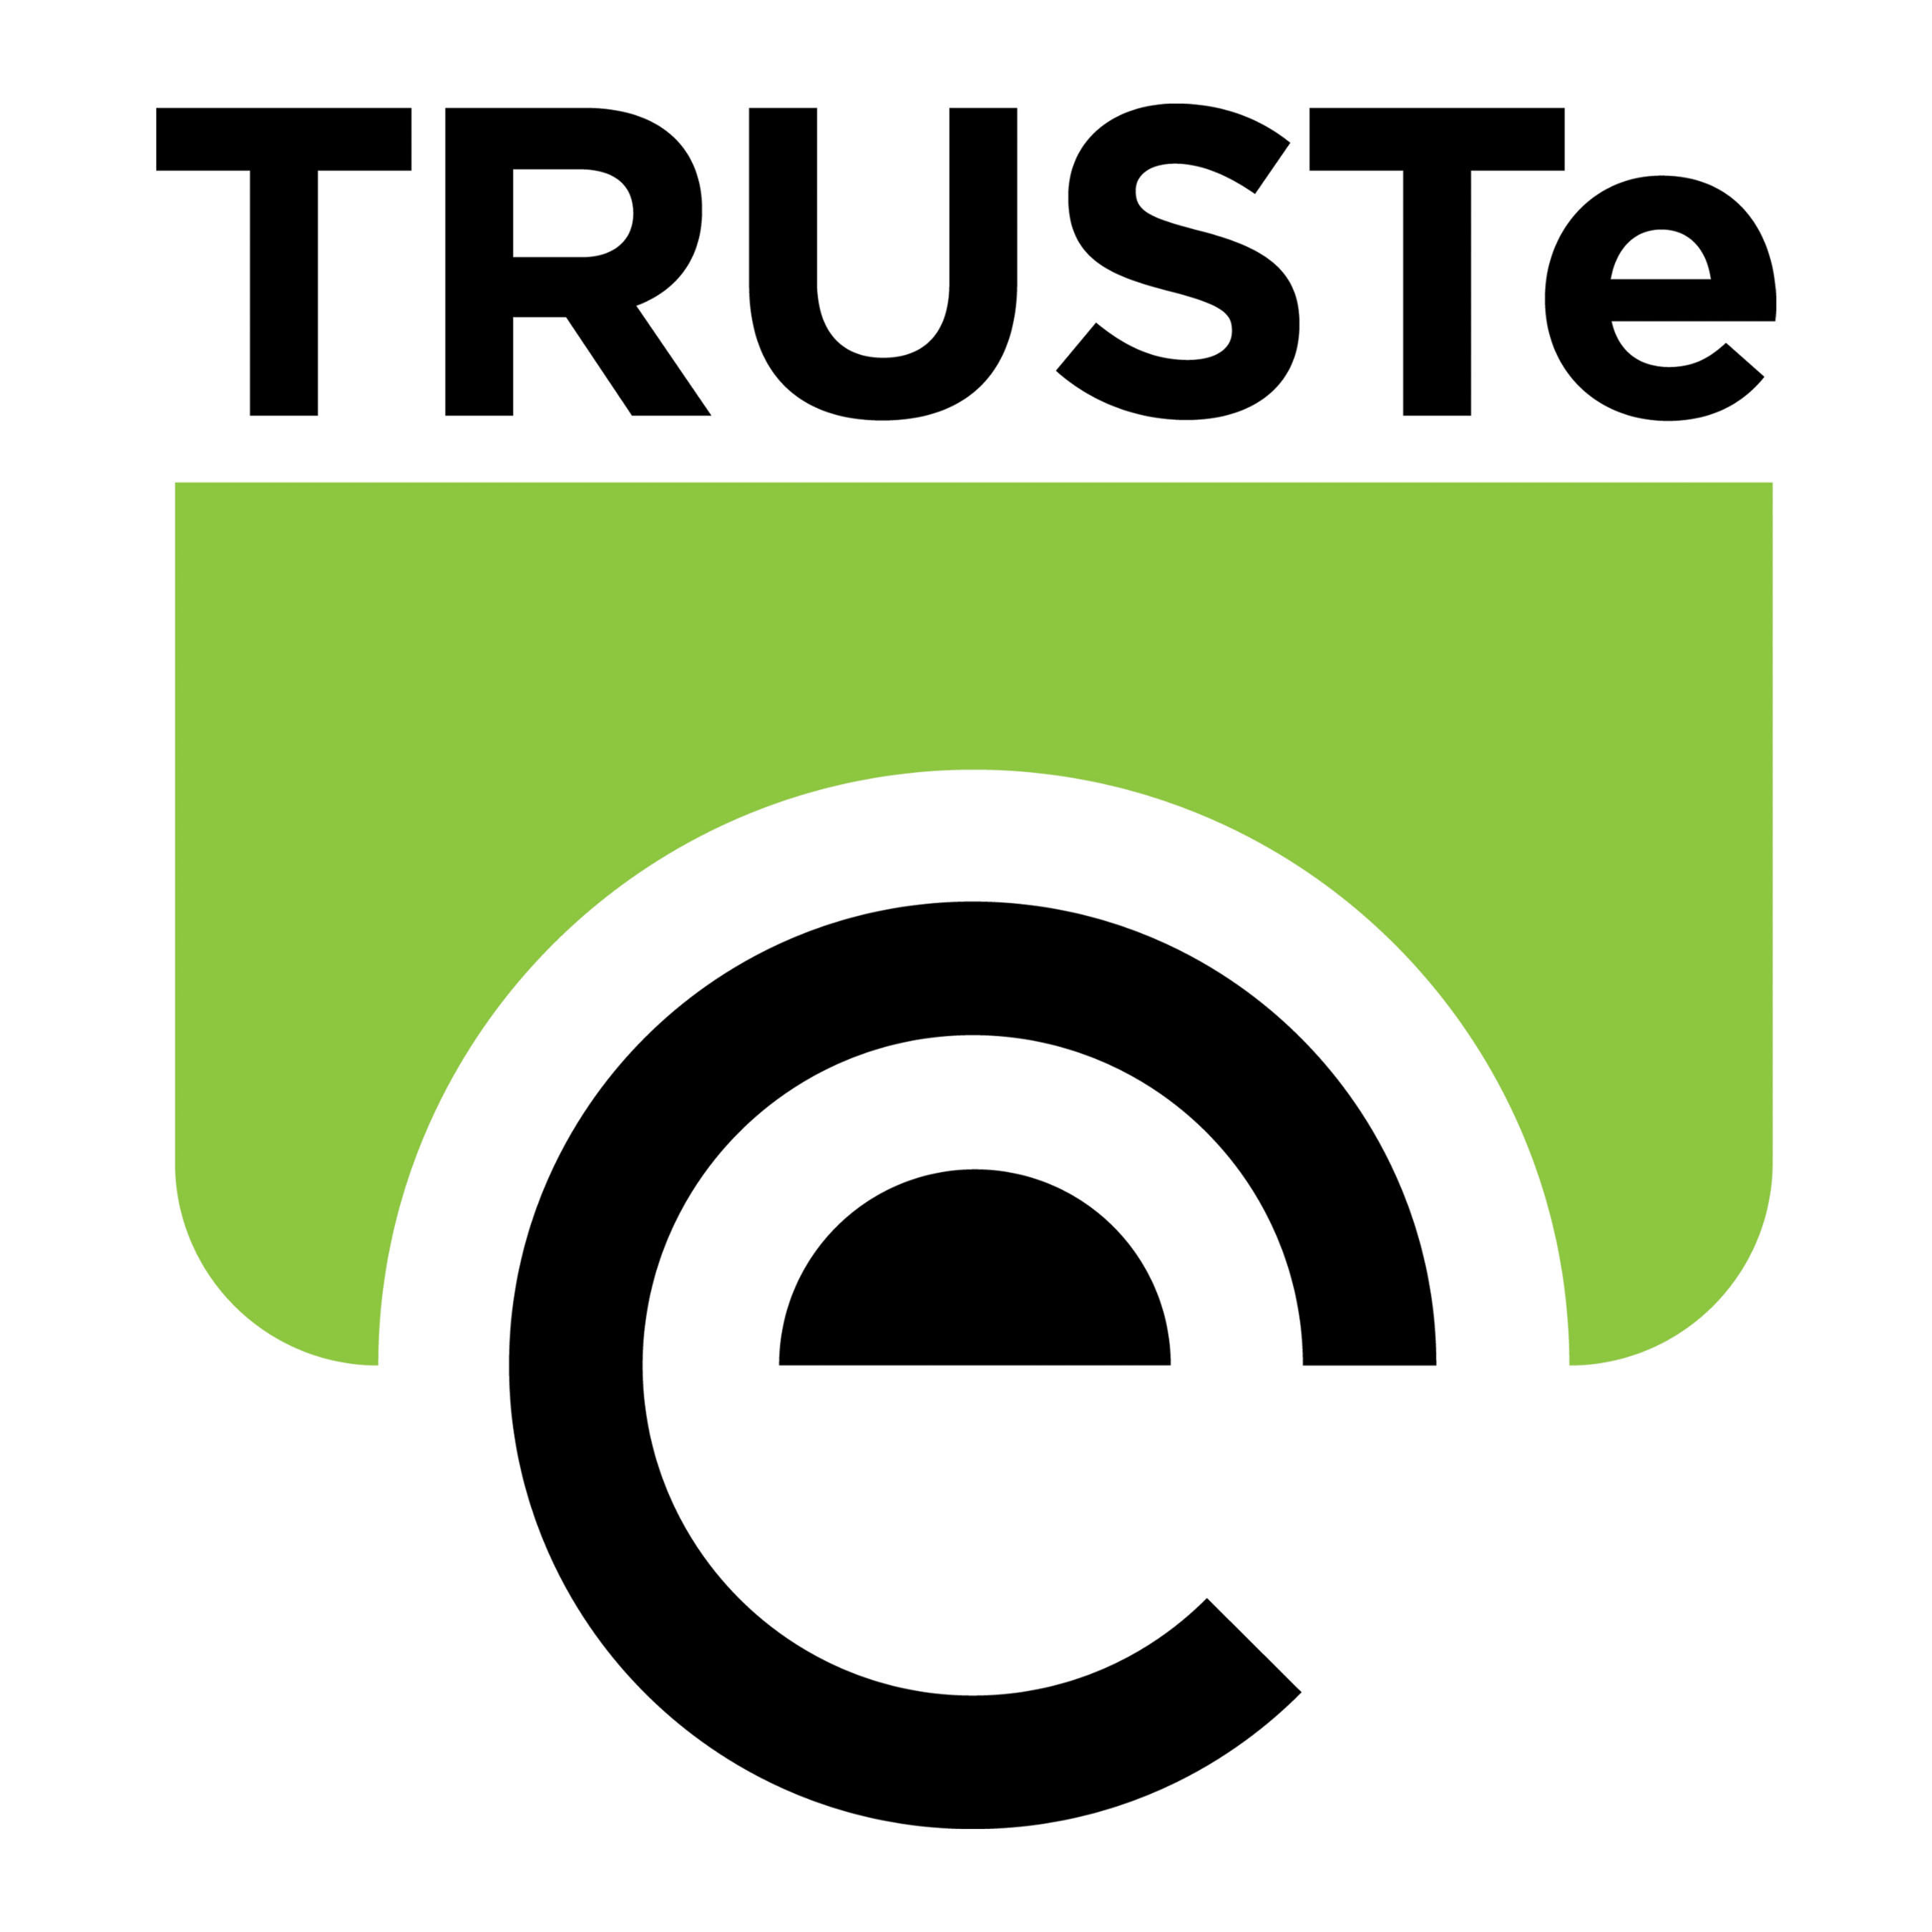 TRUSTe Assessment Manager Passes 1,000 Company Milestone